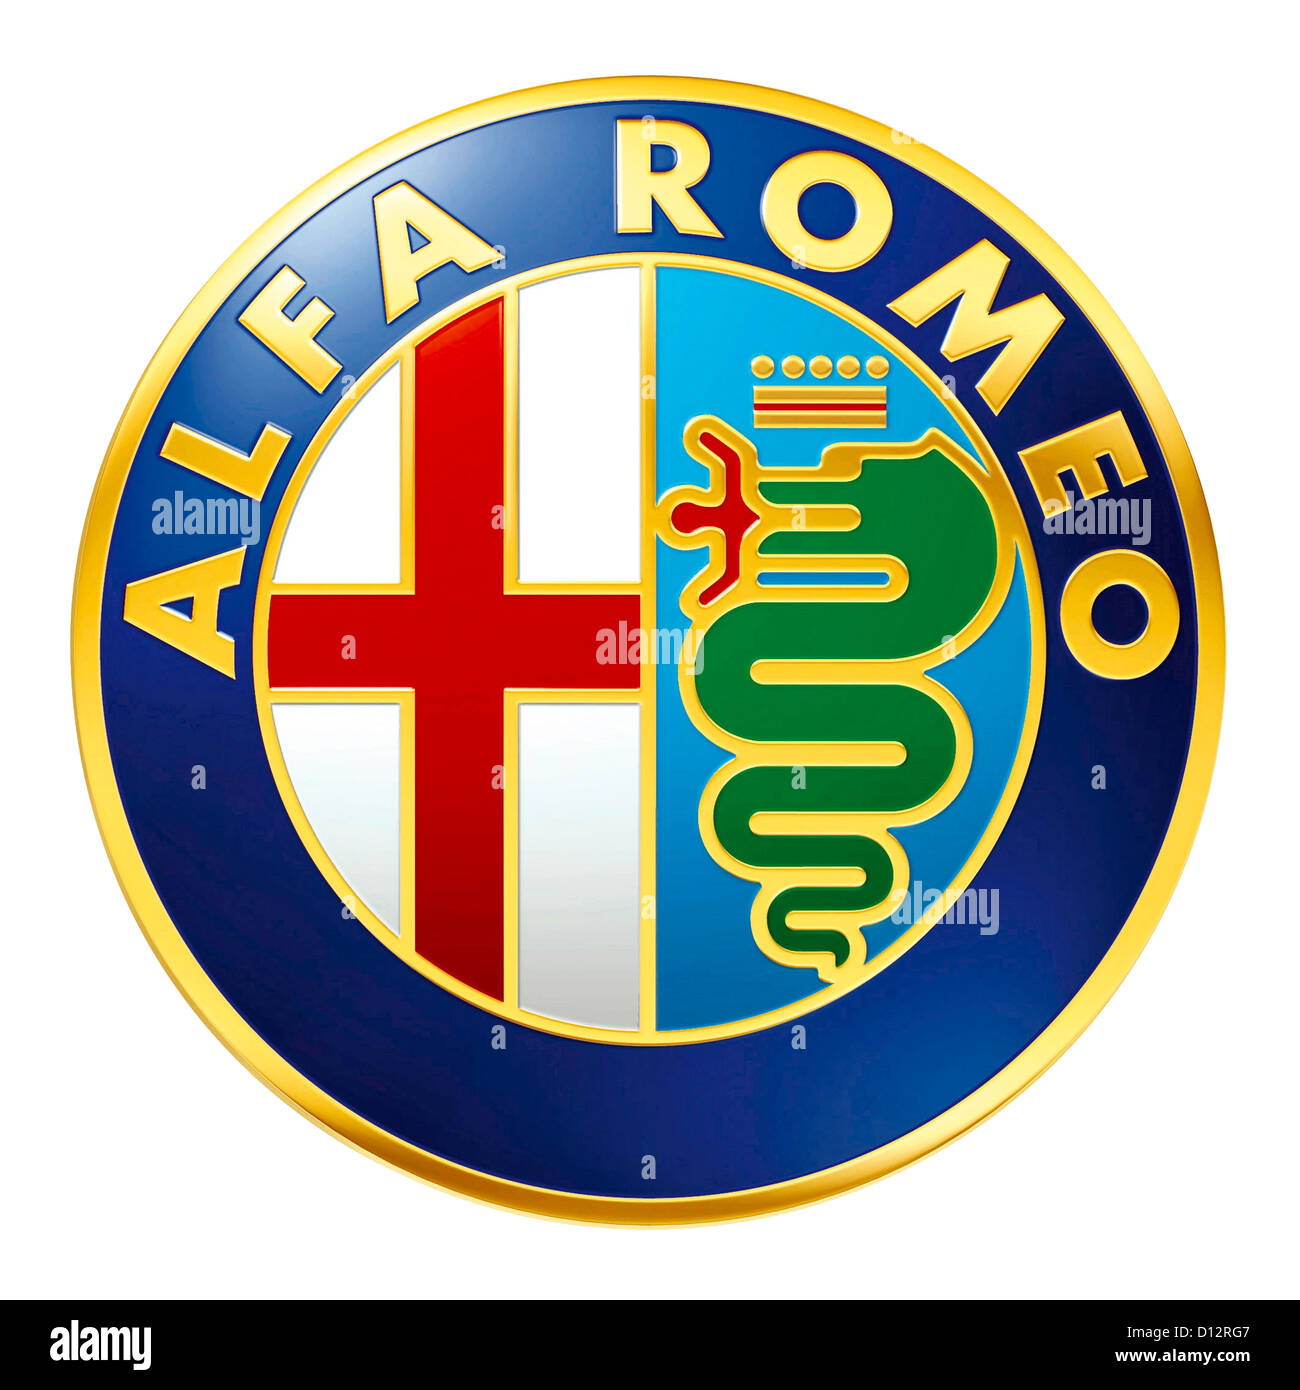 Logo of the make Alfa Romeo of the Italian car manufacturer Fiat Group with seat in Turin. - Stock Image